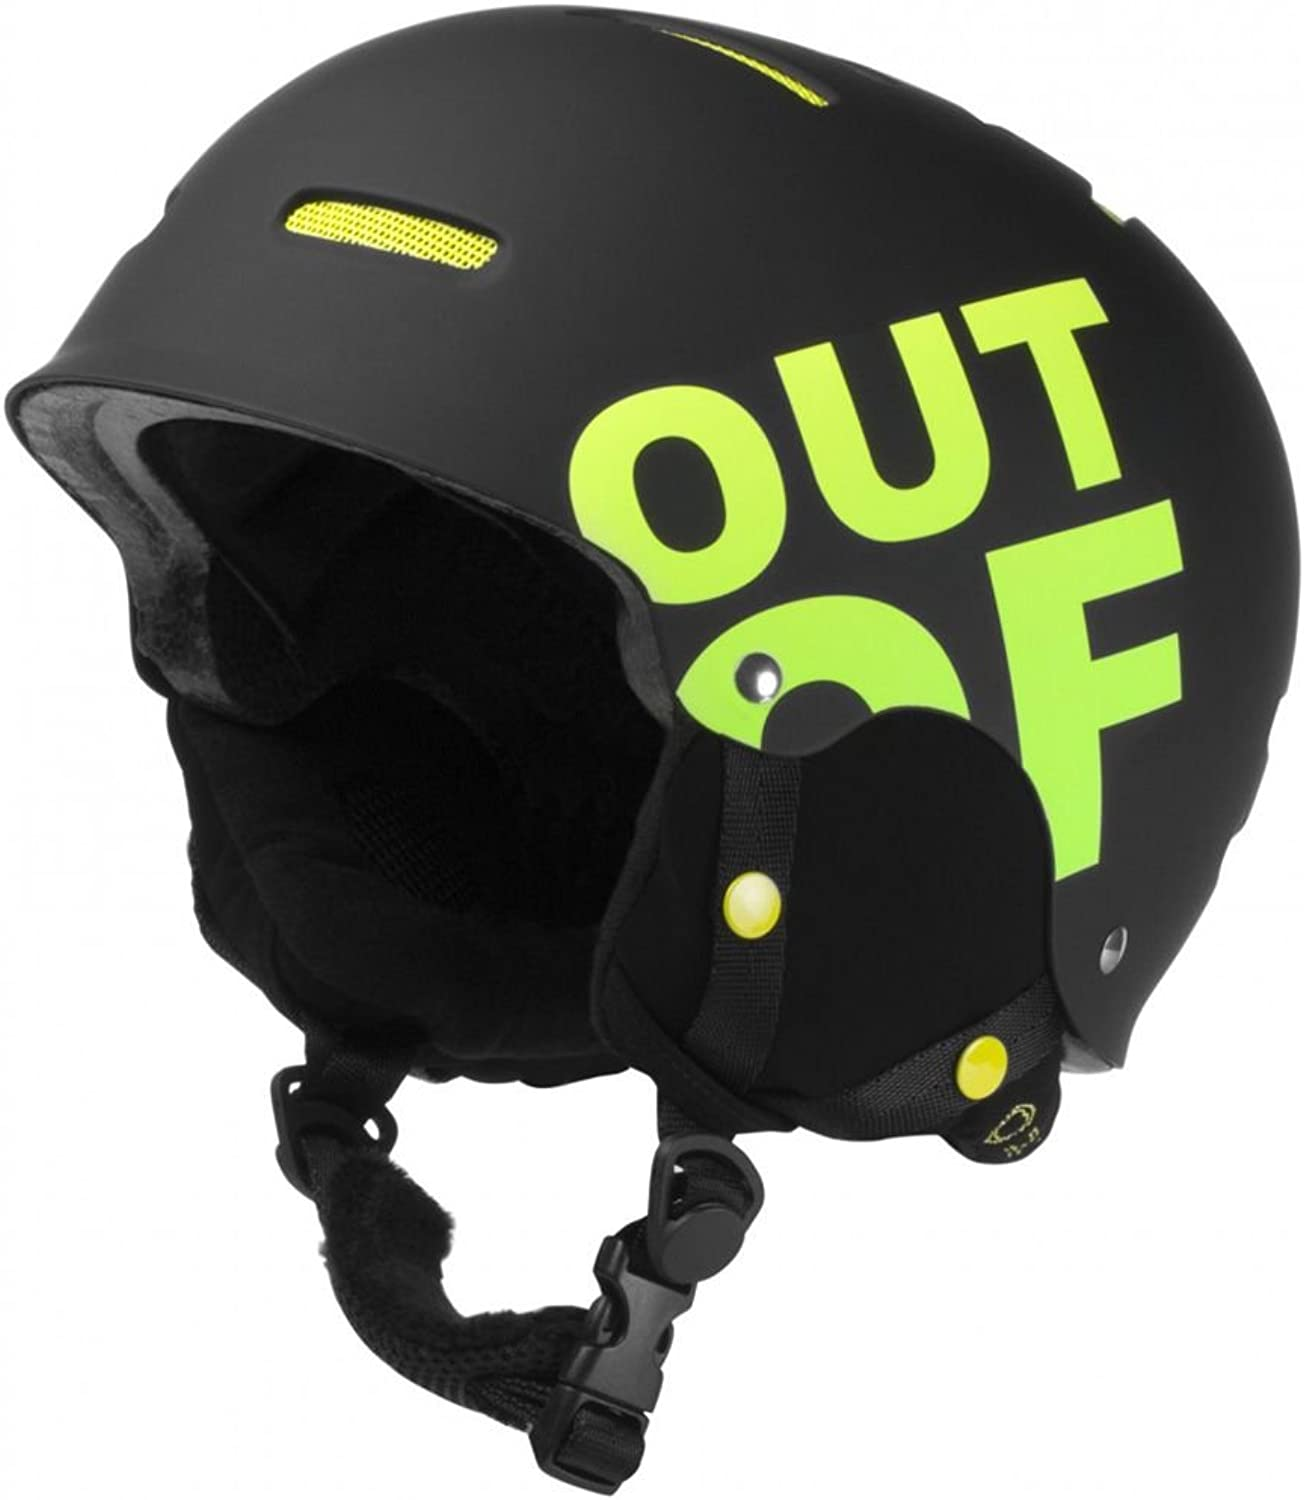 Gelb schwarz whipout Of Snowboard Helm B01NBJ5QWC Out